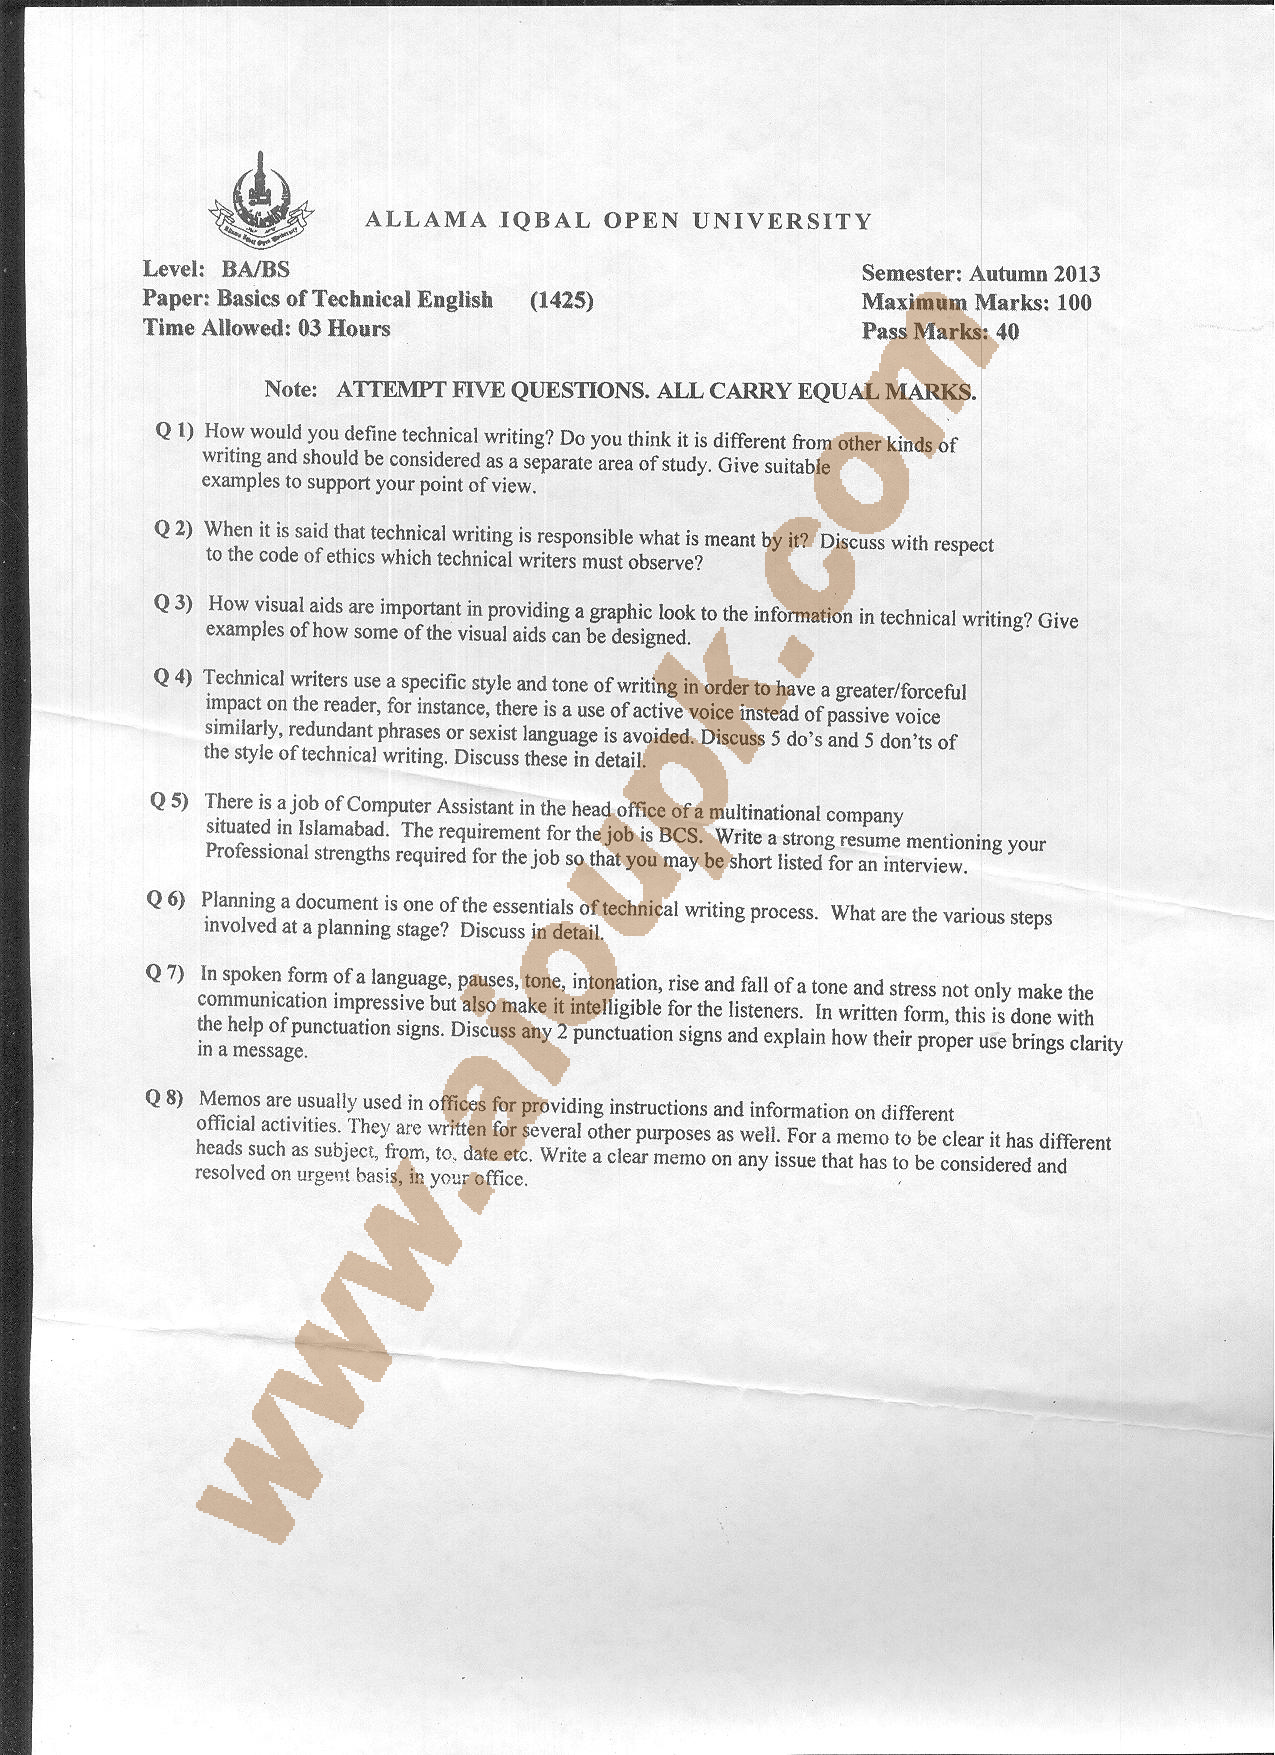 basics of technical english writing code ba bs aiou old basics of technical english writing code 1425 ba bs aiou old paper spring 2013